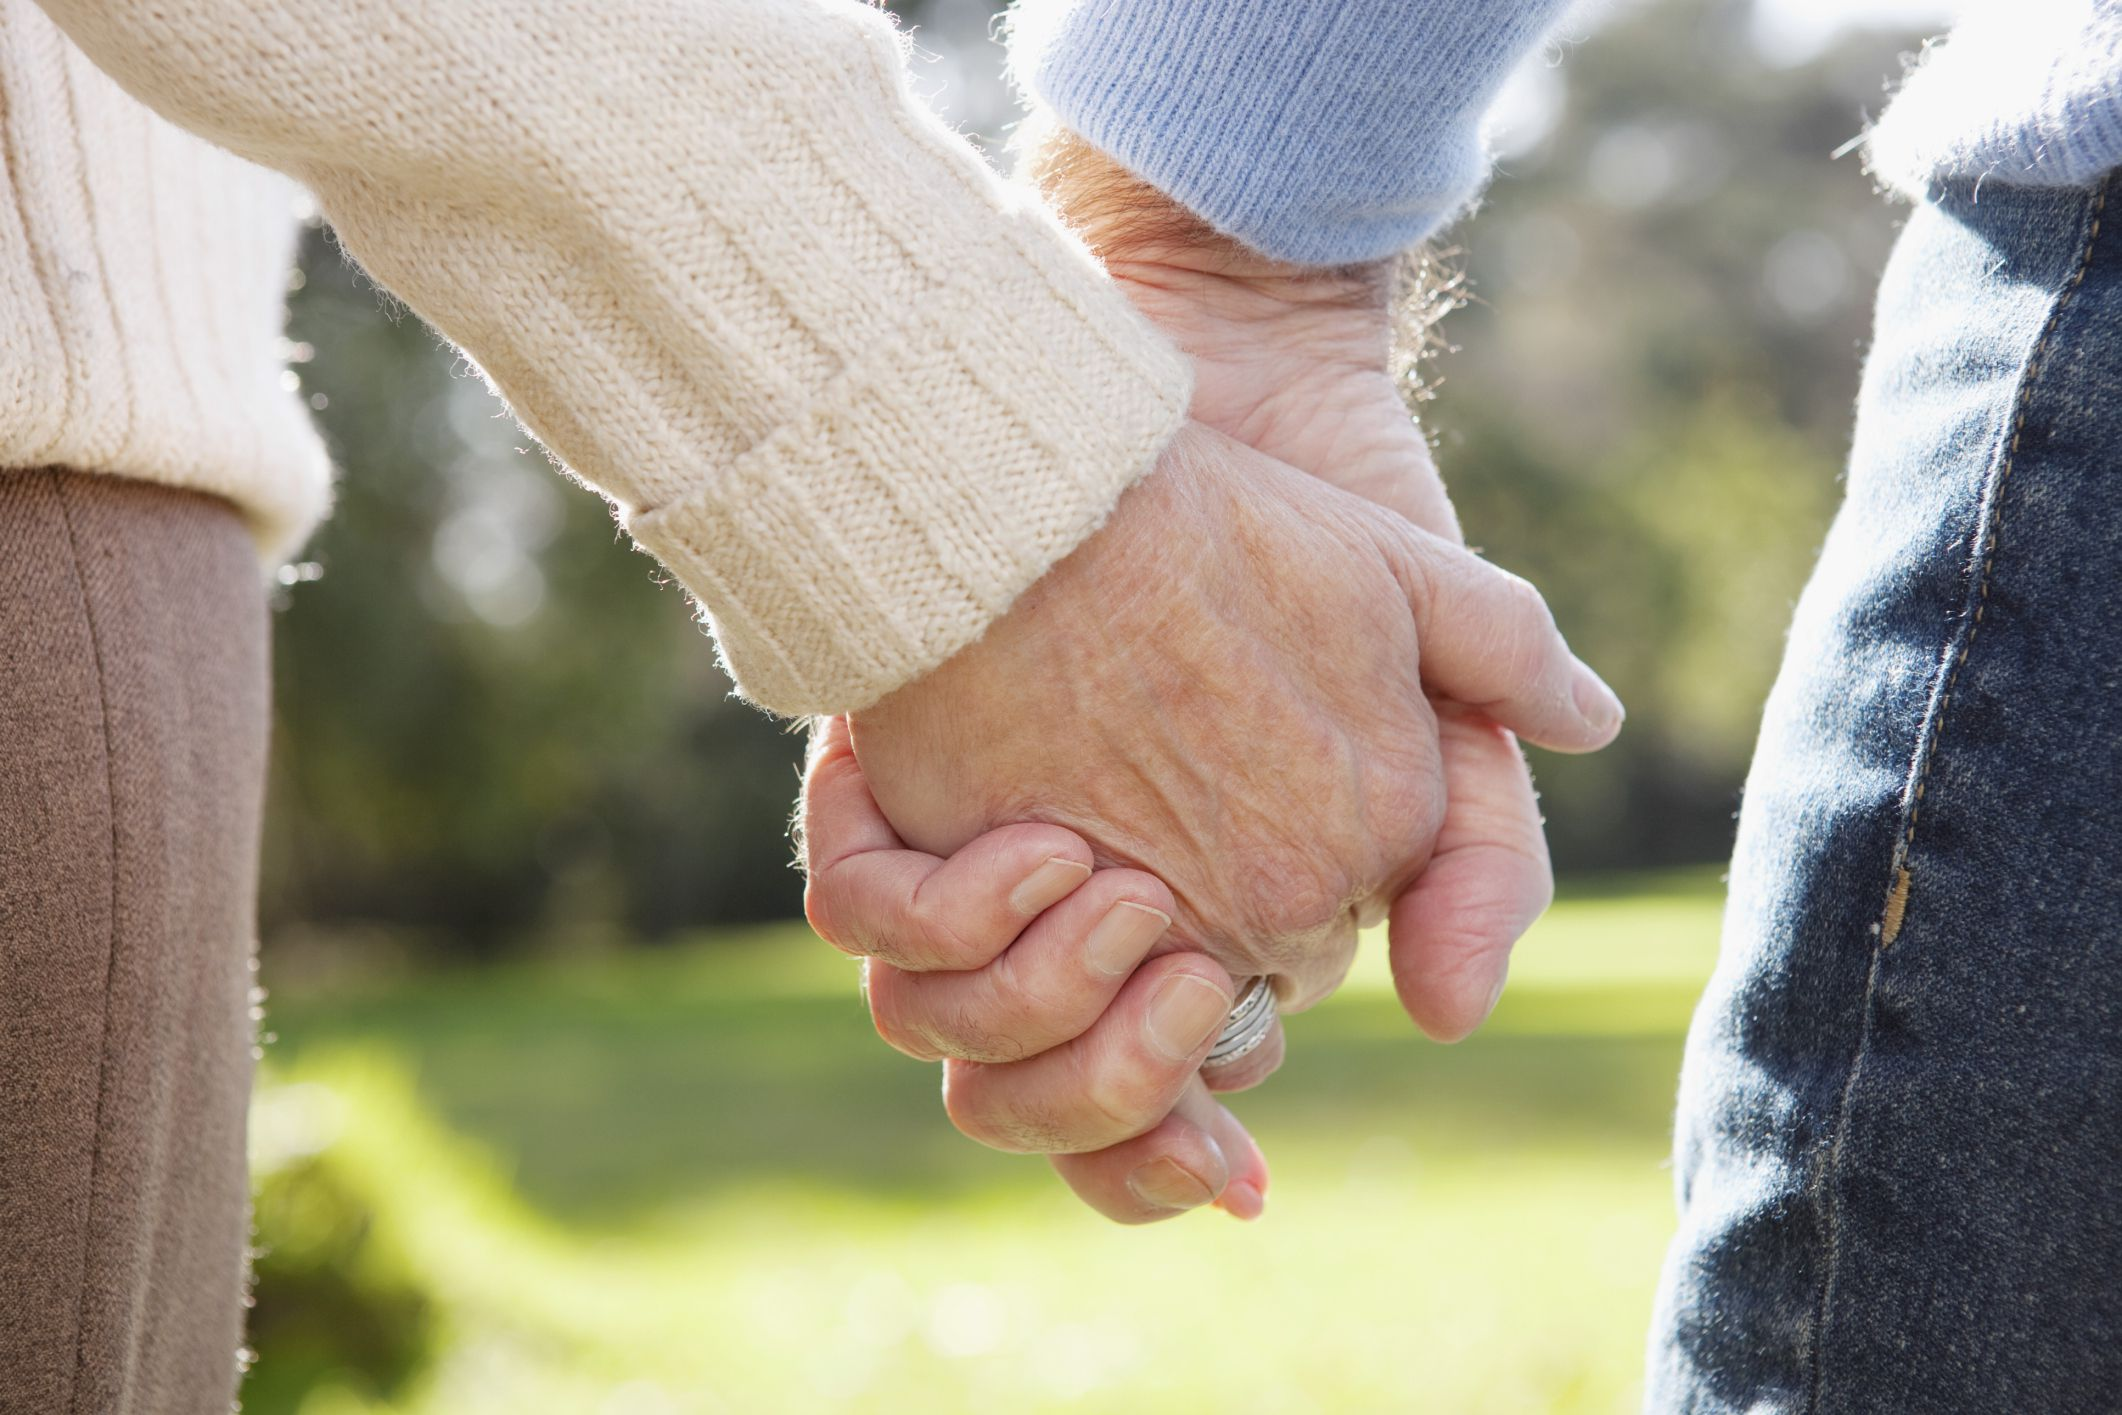 Married? Here's How Social Security Survivor Benefits for a Spouse Work